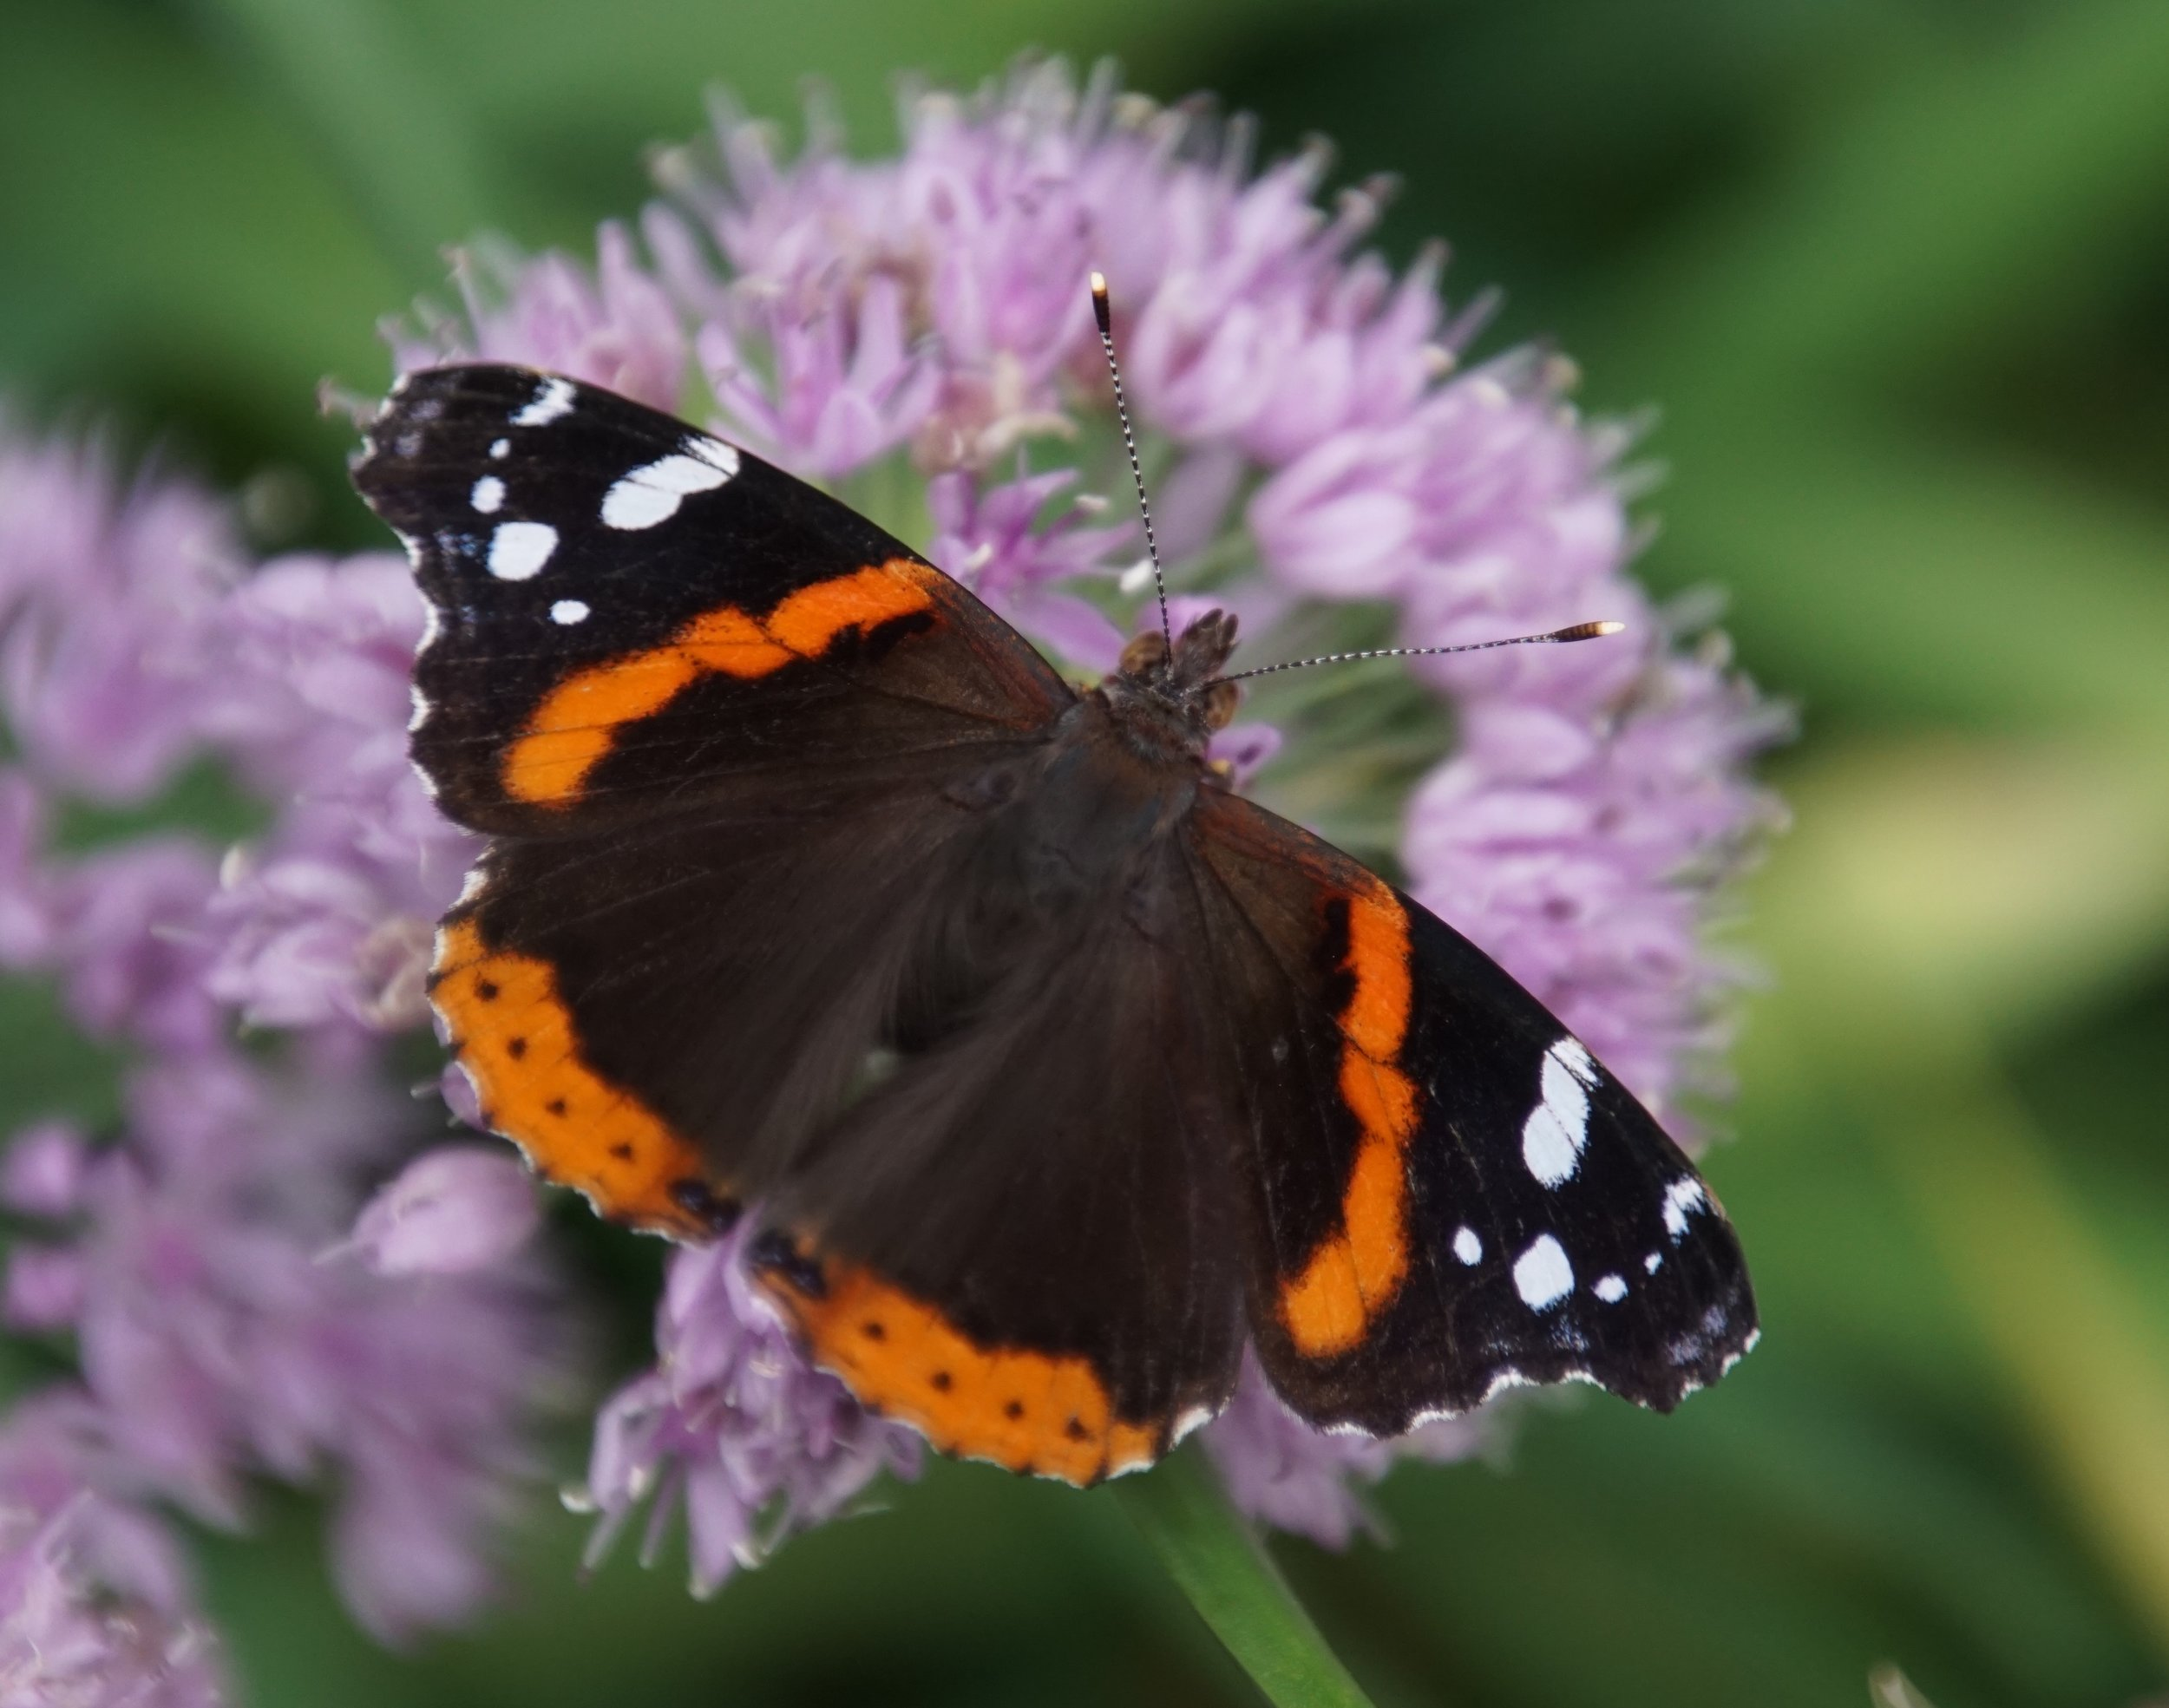 """The name red admiral is a corruption of the """"red admirable"""" moniker given to this butterfly by early naturalists. Perhaps it should have been the """"orange admirable."""""""